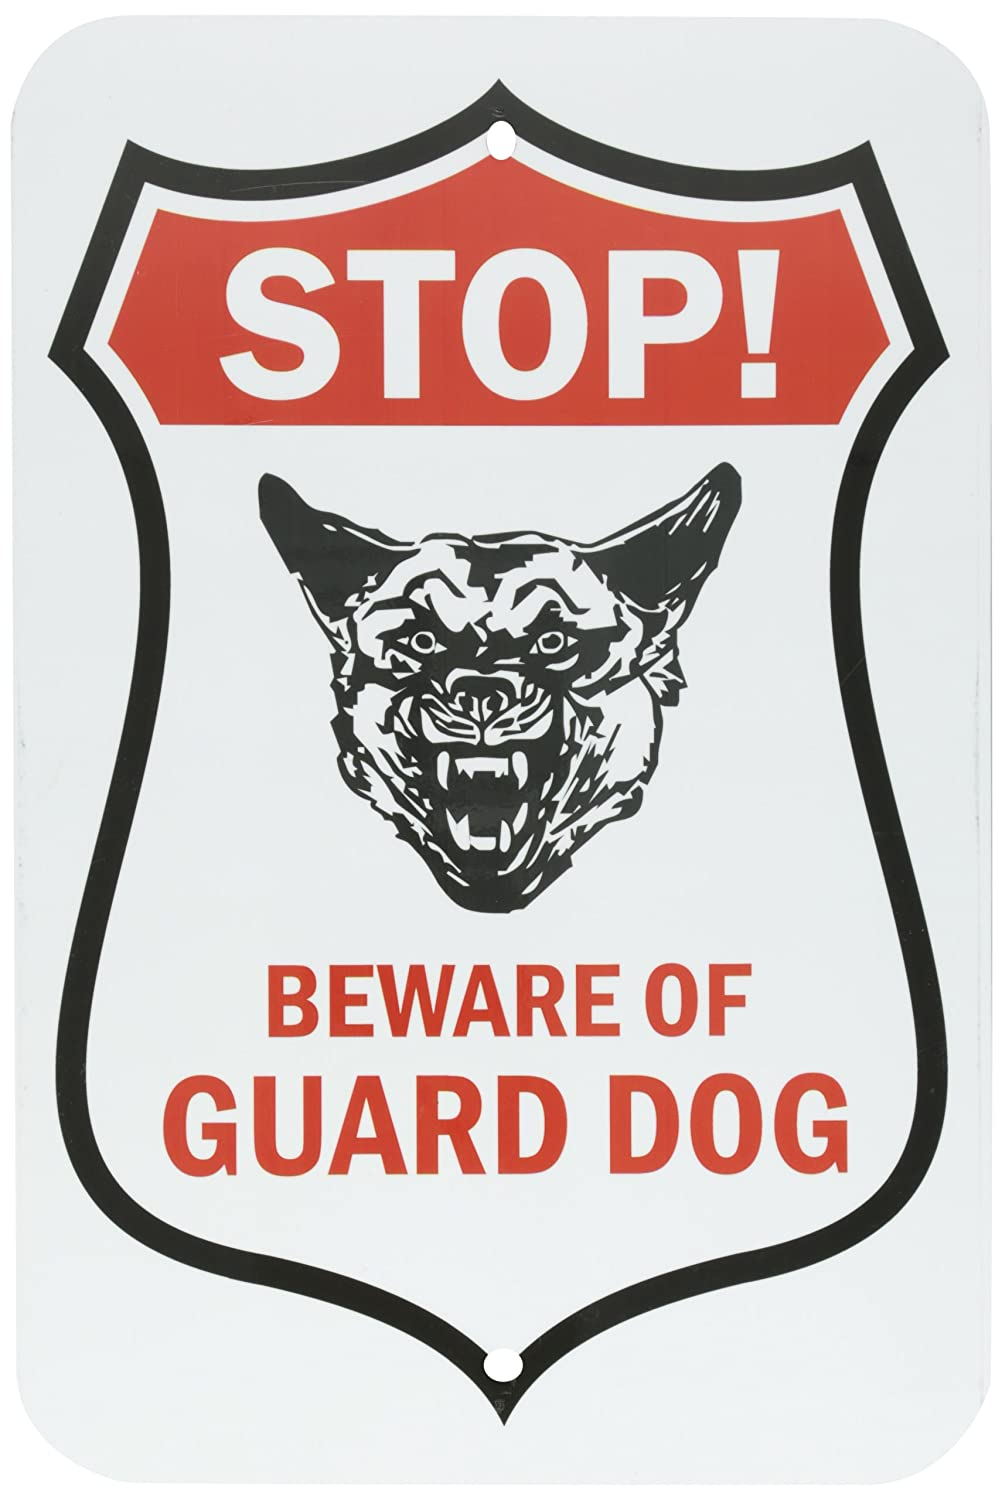 SmartSign Aluminum Sign, Legend'Stop! Beware of Guard Dog' with Graphic, 18' High X 12' Wide, Black/Red on White LegendStop! Beware of Guard Dog with Graphic 18 High X 12 Wide Lyle Signs K-7863-AL-12x18